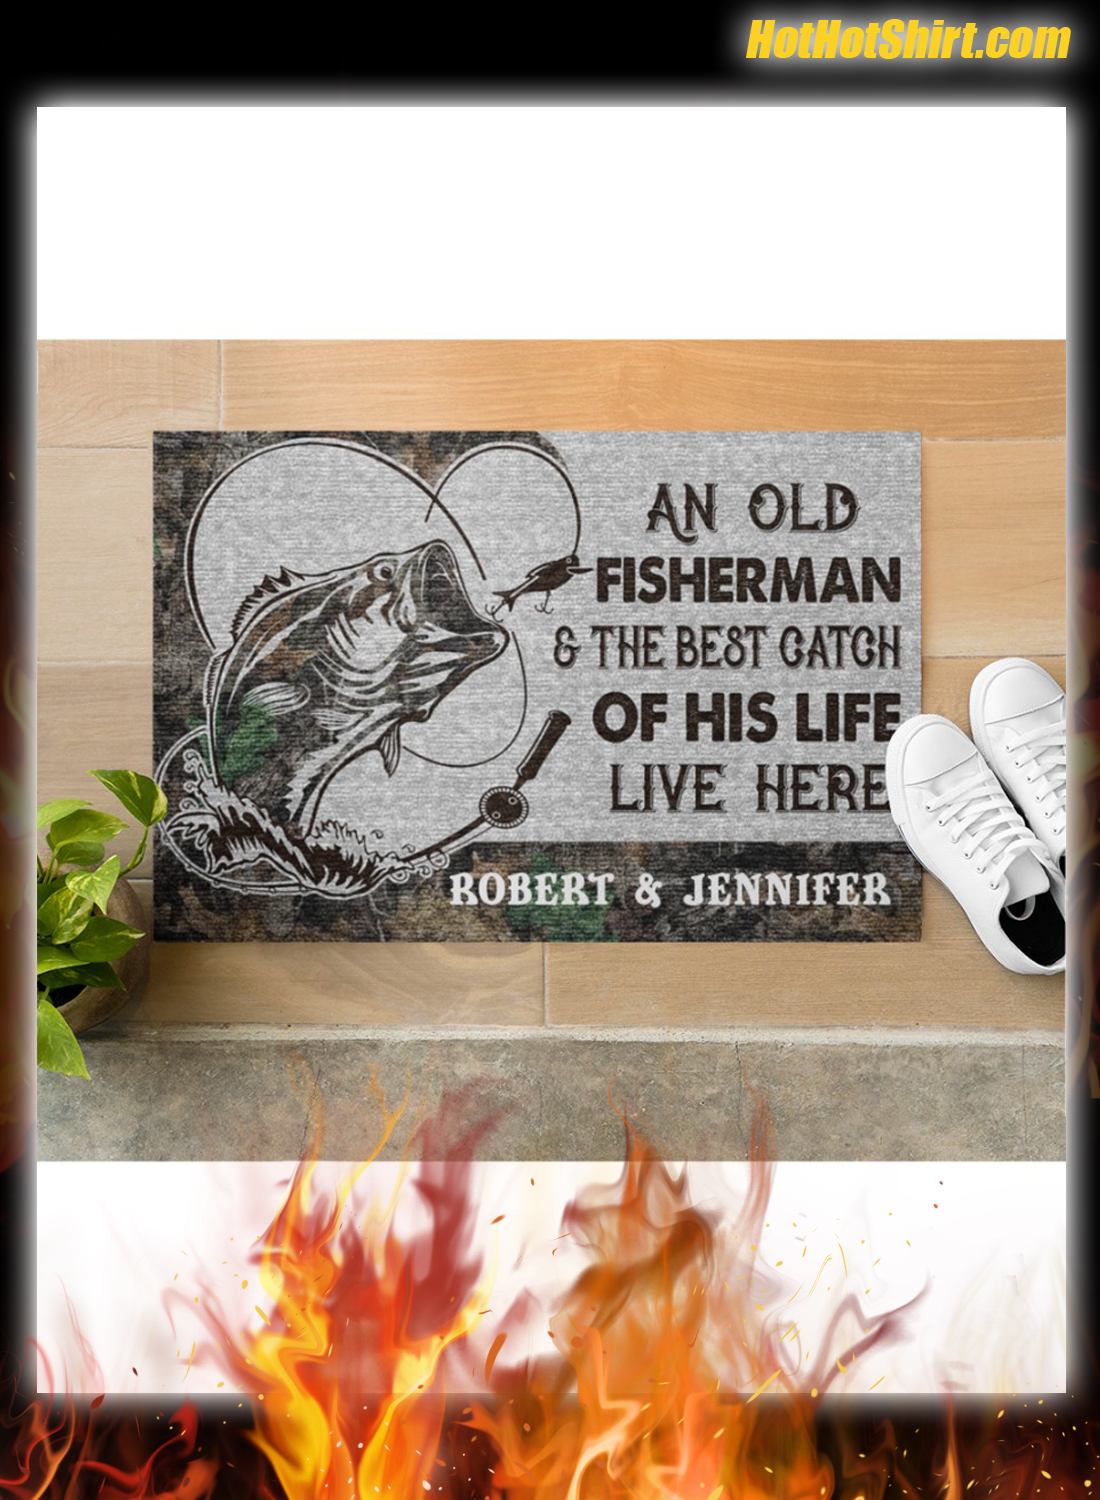 Personalized Name An Old Fisherman And The Best Catch Of His Life Here Doormat 2